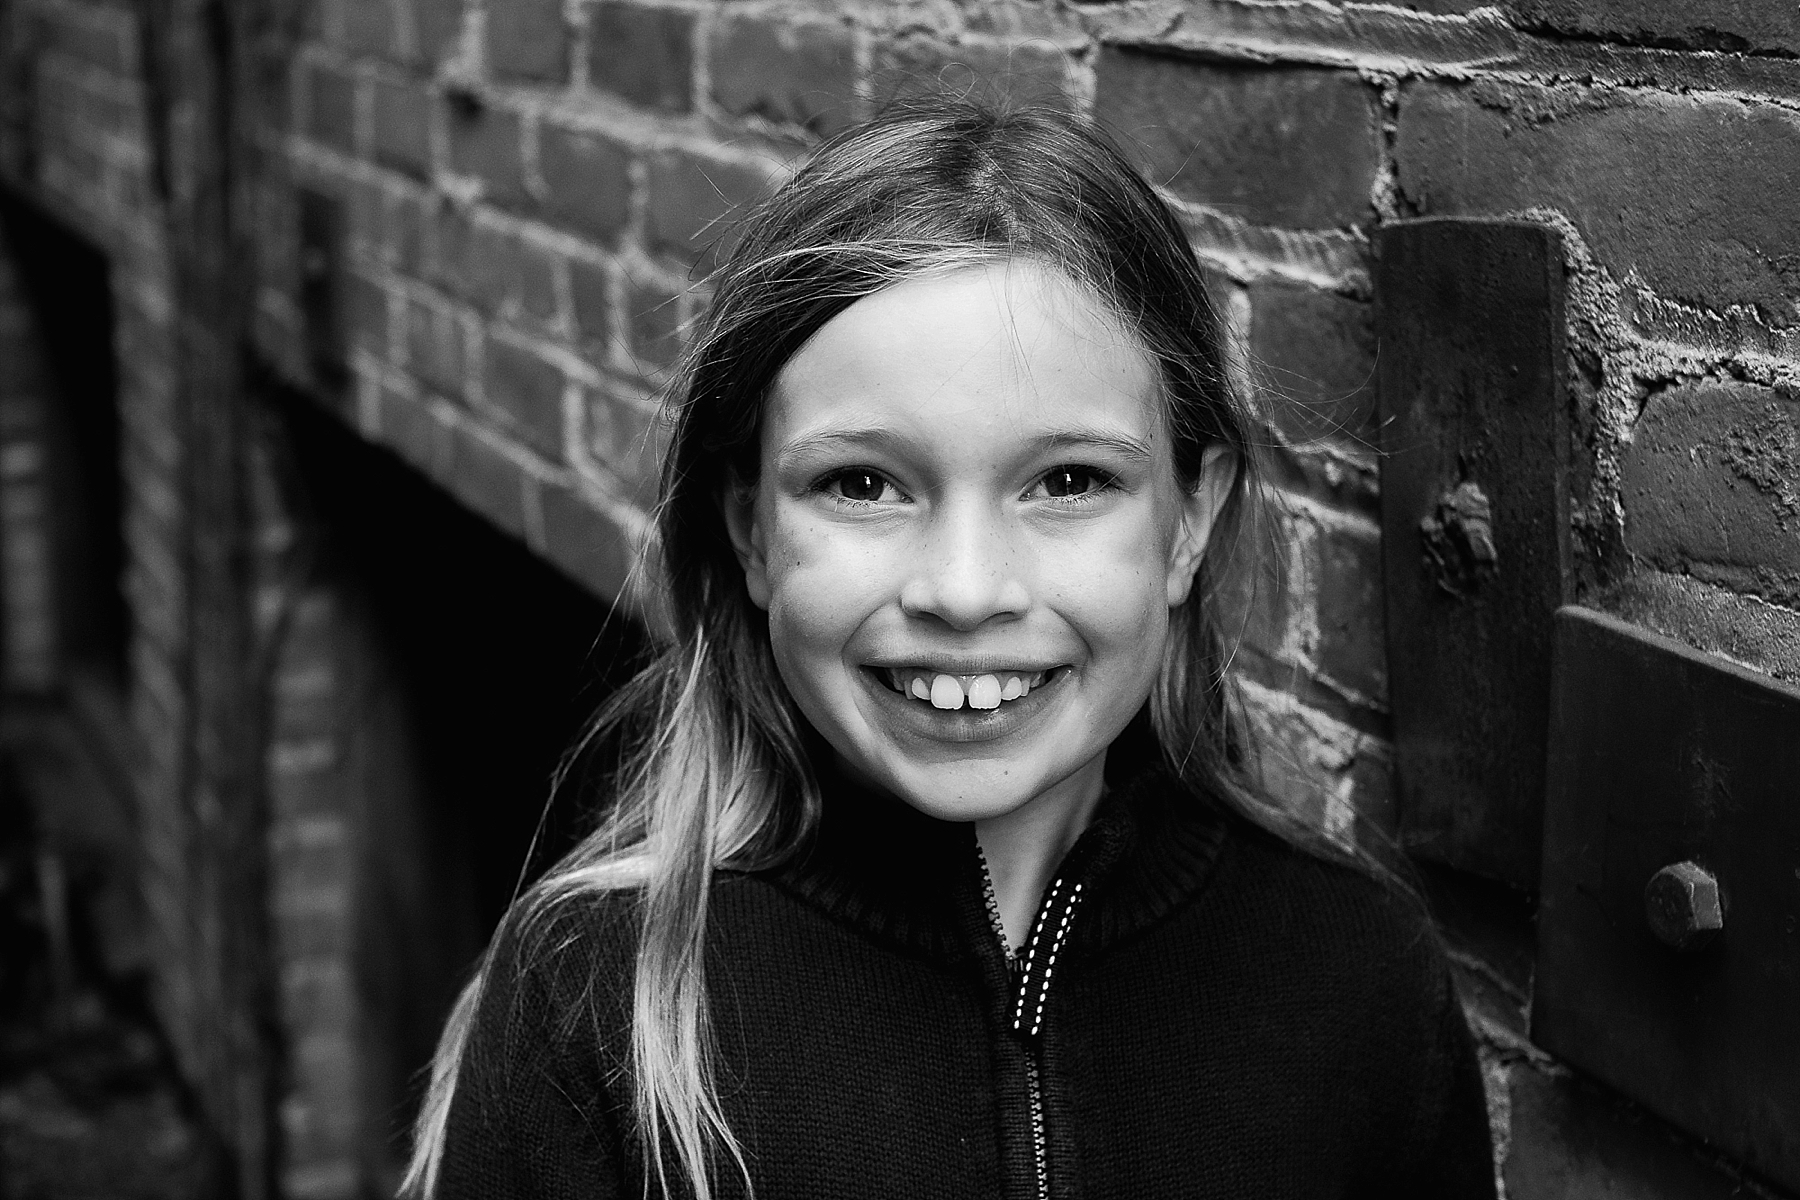 An urban black and white portrait of a girl next to a brick wall by Erica Faith Photography.